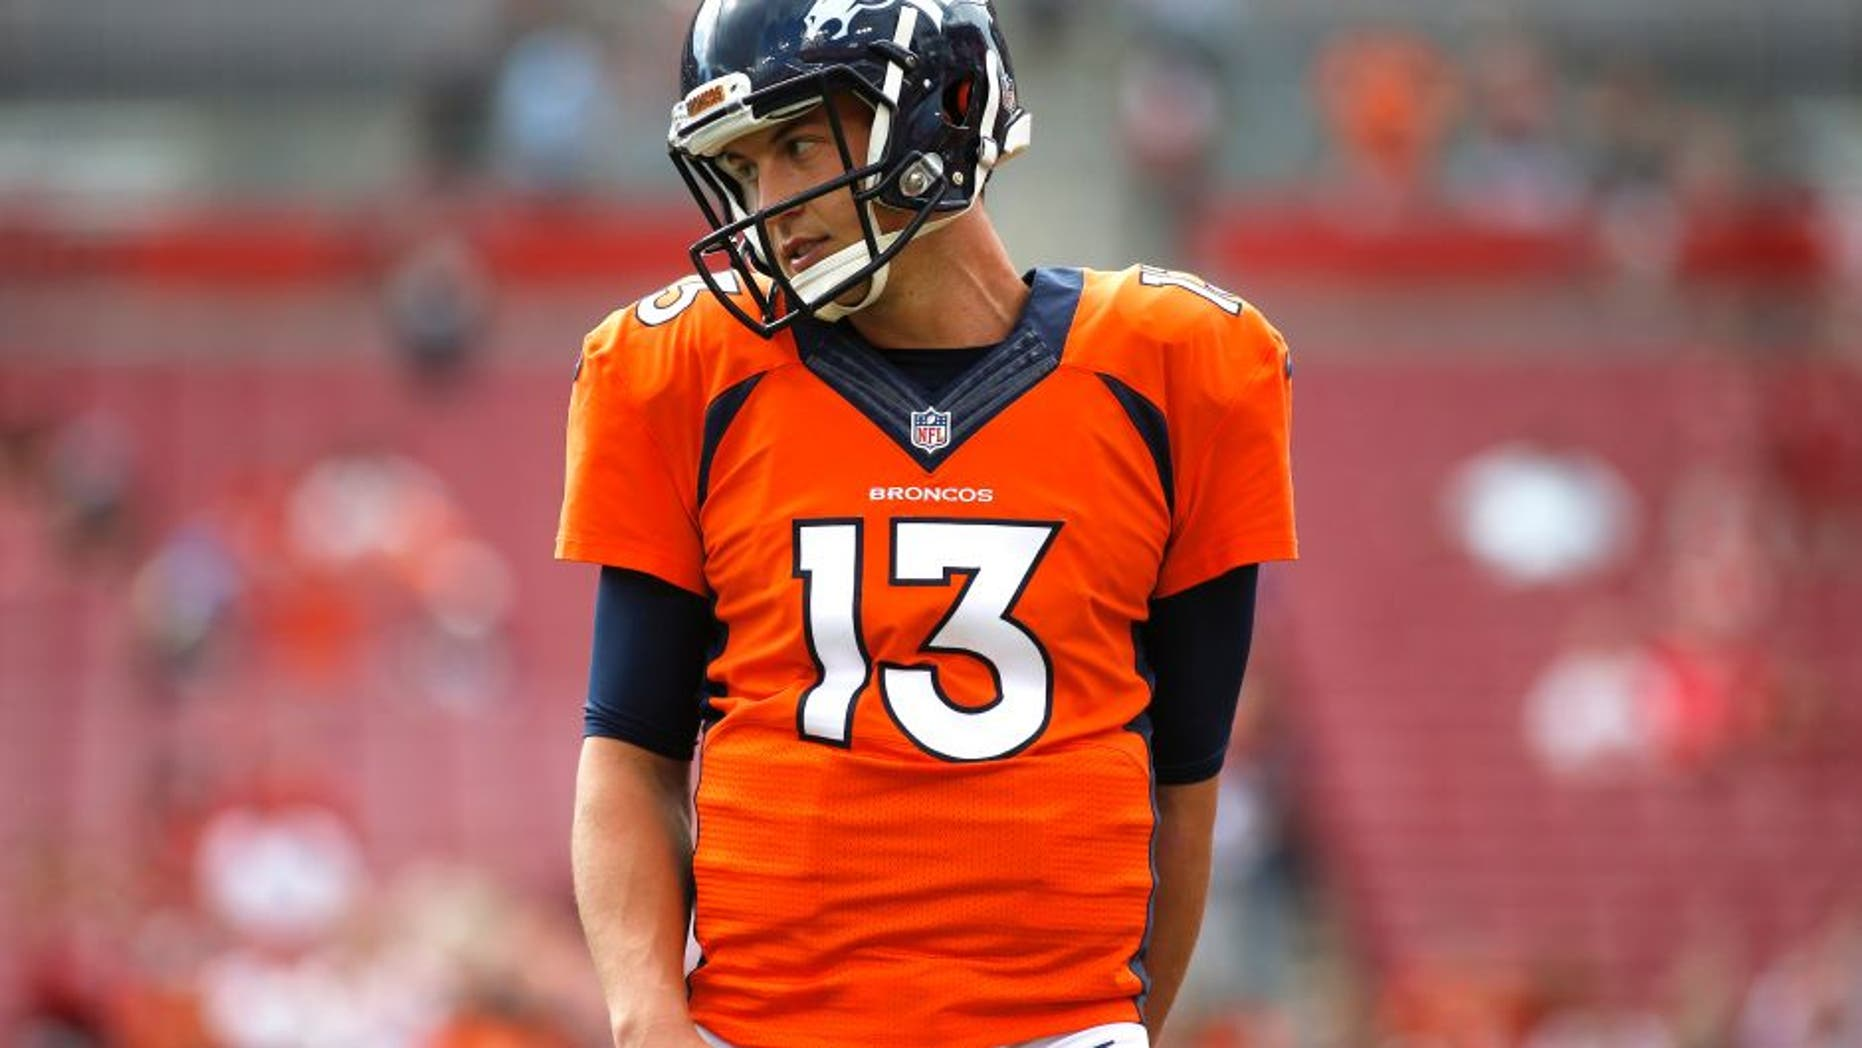 TAMPA, FL - OCTOBER 2: Quarterback Trevor Siemian #13 of the Denver Broncos warms up before the start of an NFL game against the Tampa Bay Buccaneers on October 2, 2016 at Raymond James Stadium in Tampa, Florida. (Photo by Brian Blanco/Getty Images)